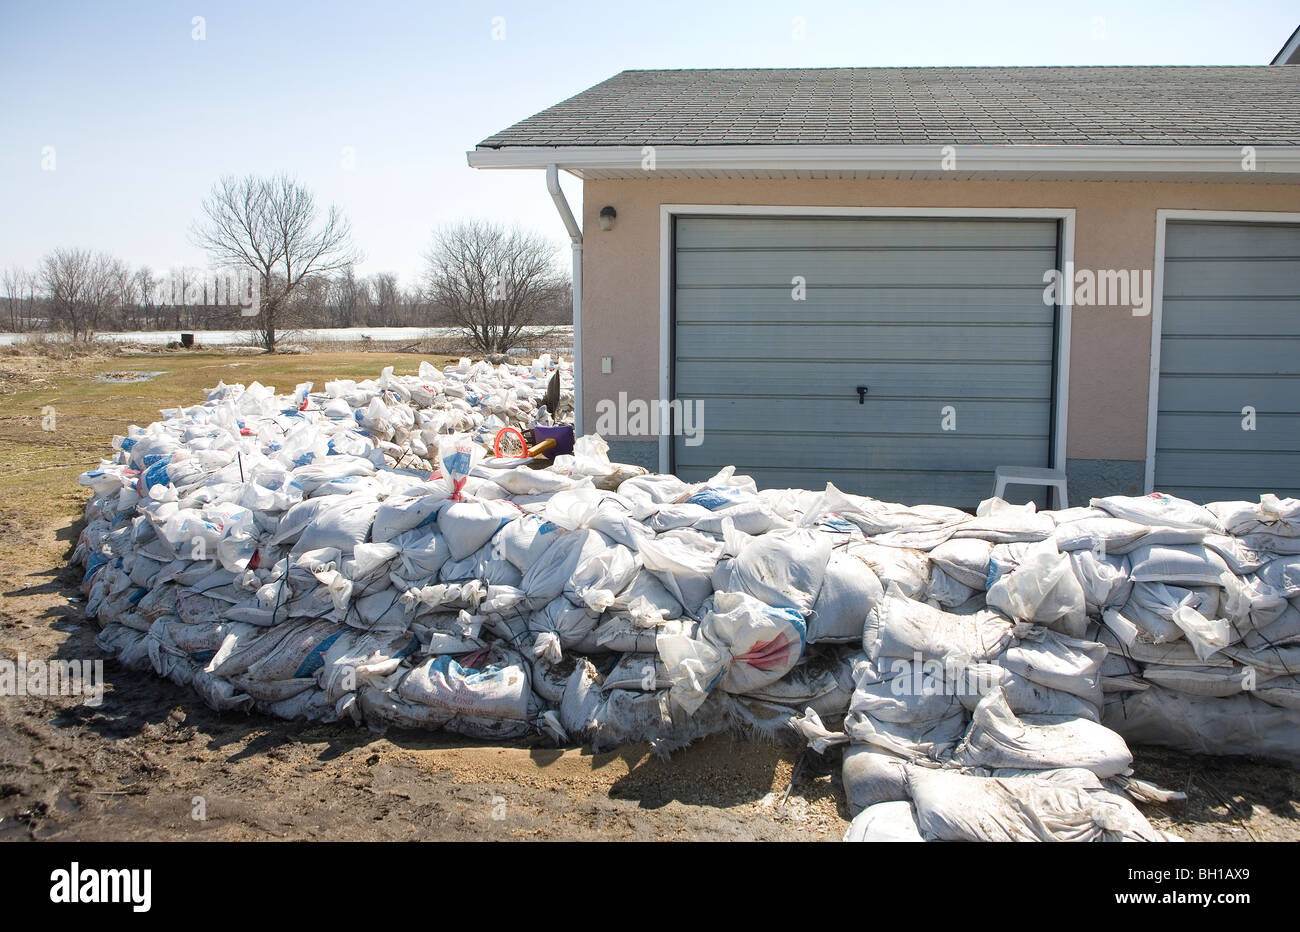 Dyke of sandbags around rural home to protect from Red River floodwaters, Manitoba, Canada - Stock Image